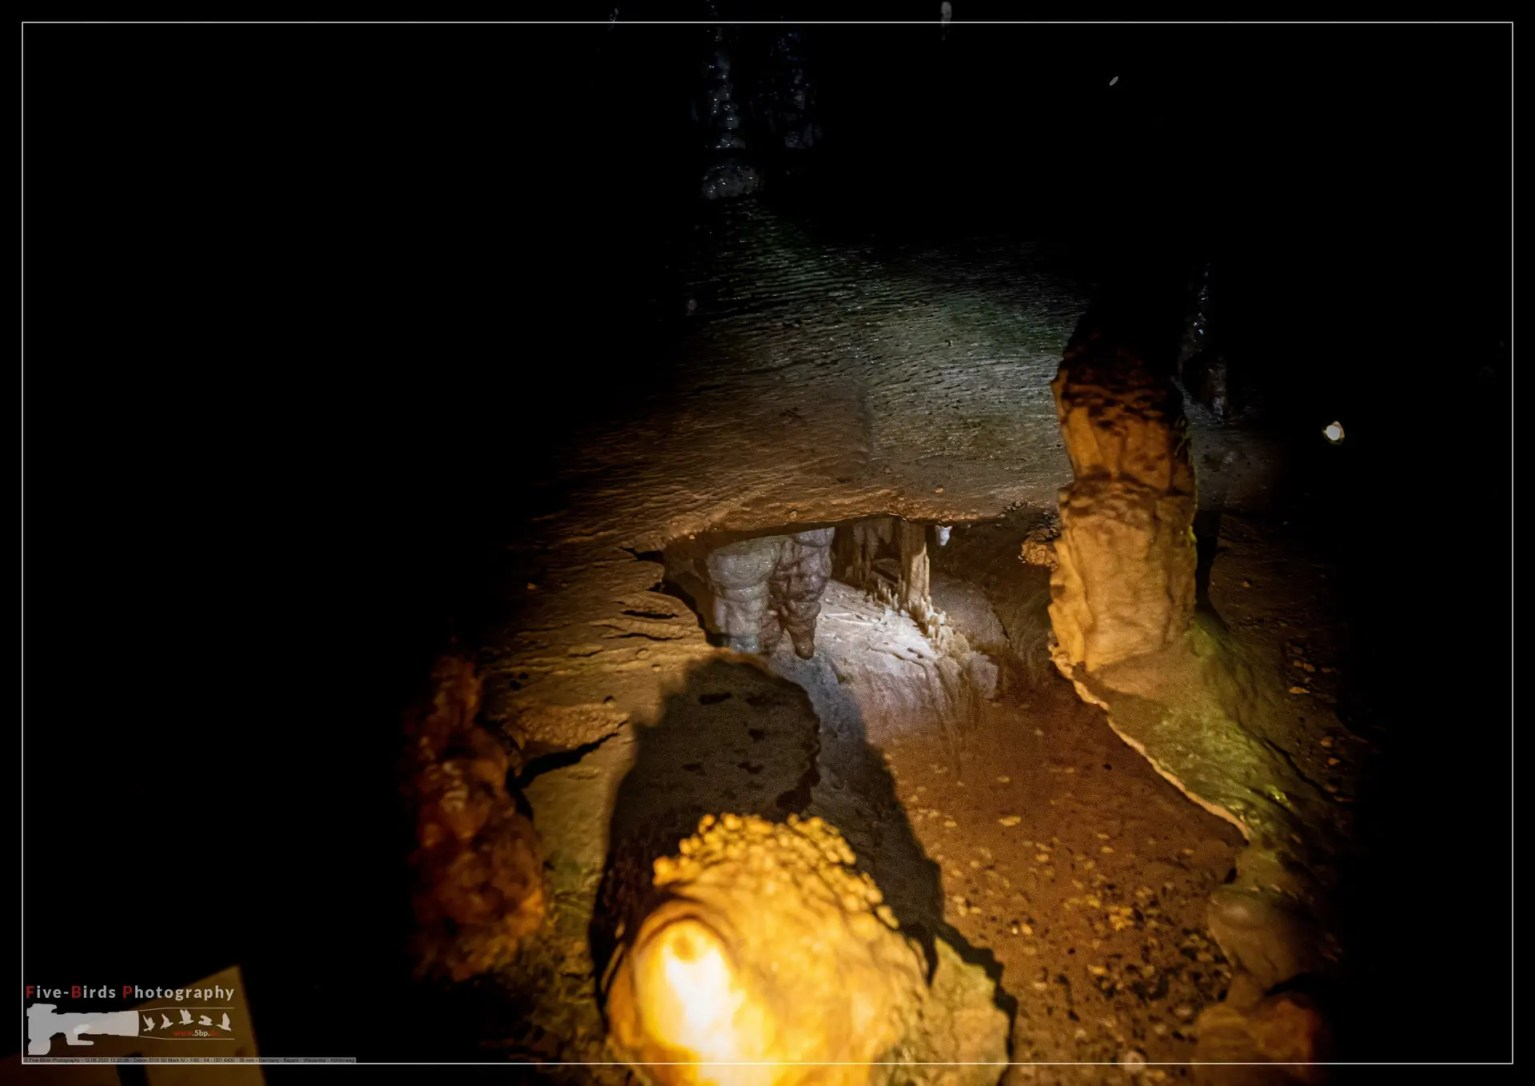 Interior photos of a stalactite cave in Franconian Switzerland in southern Germany